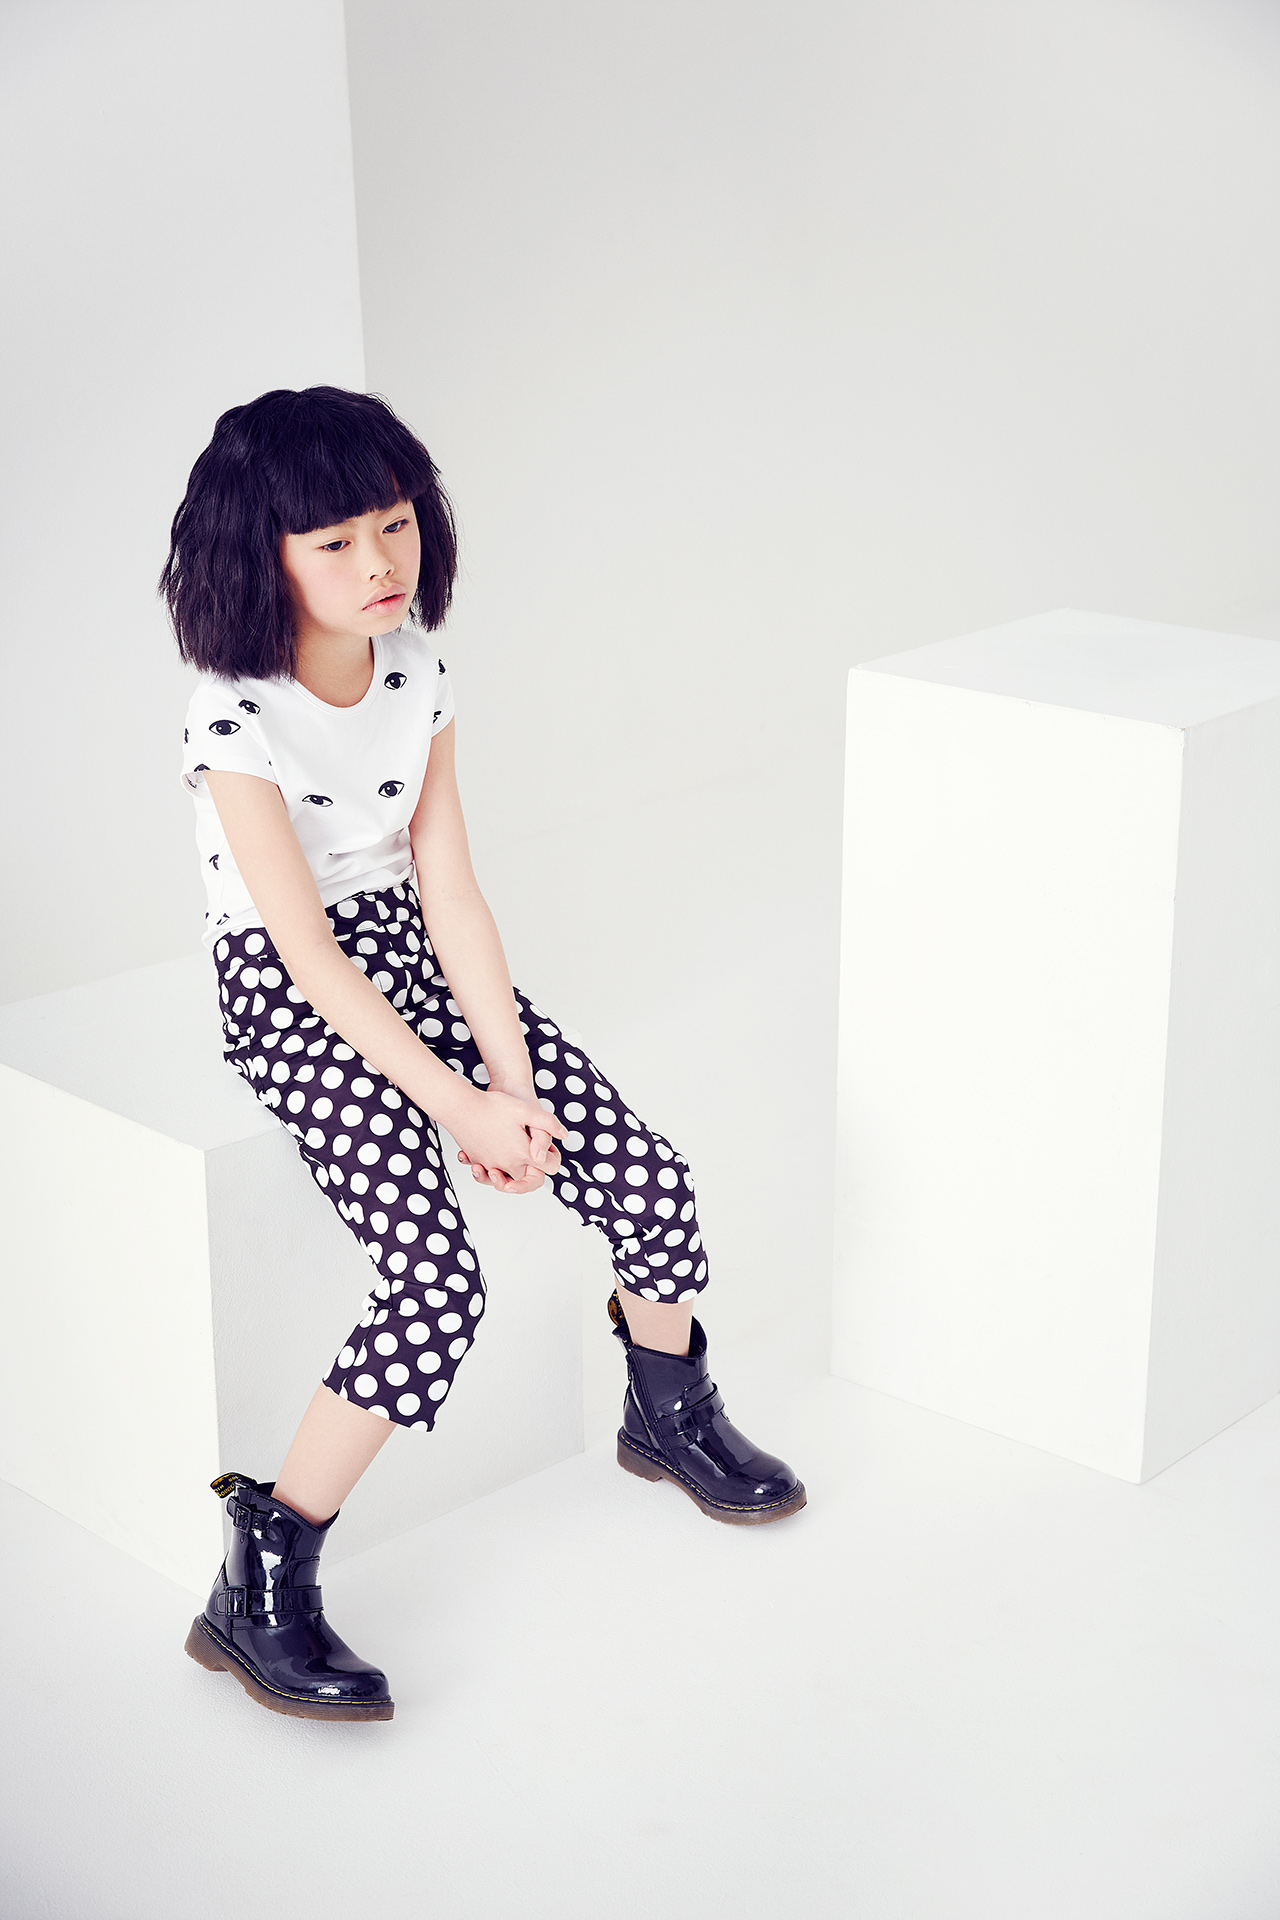 Kids fashion story monochrome girl 2